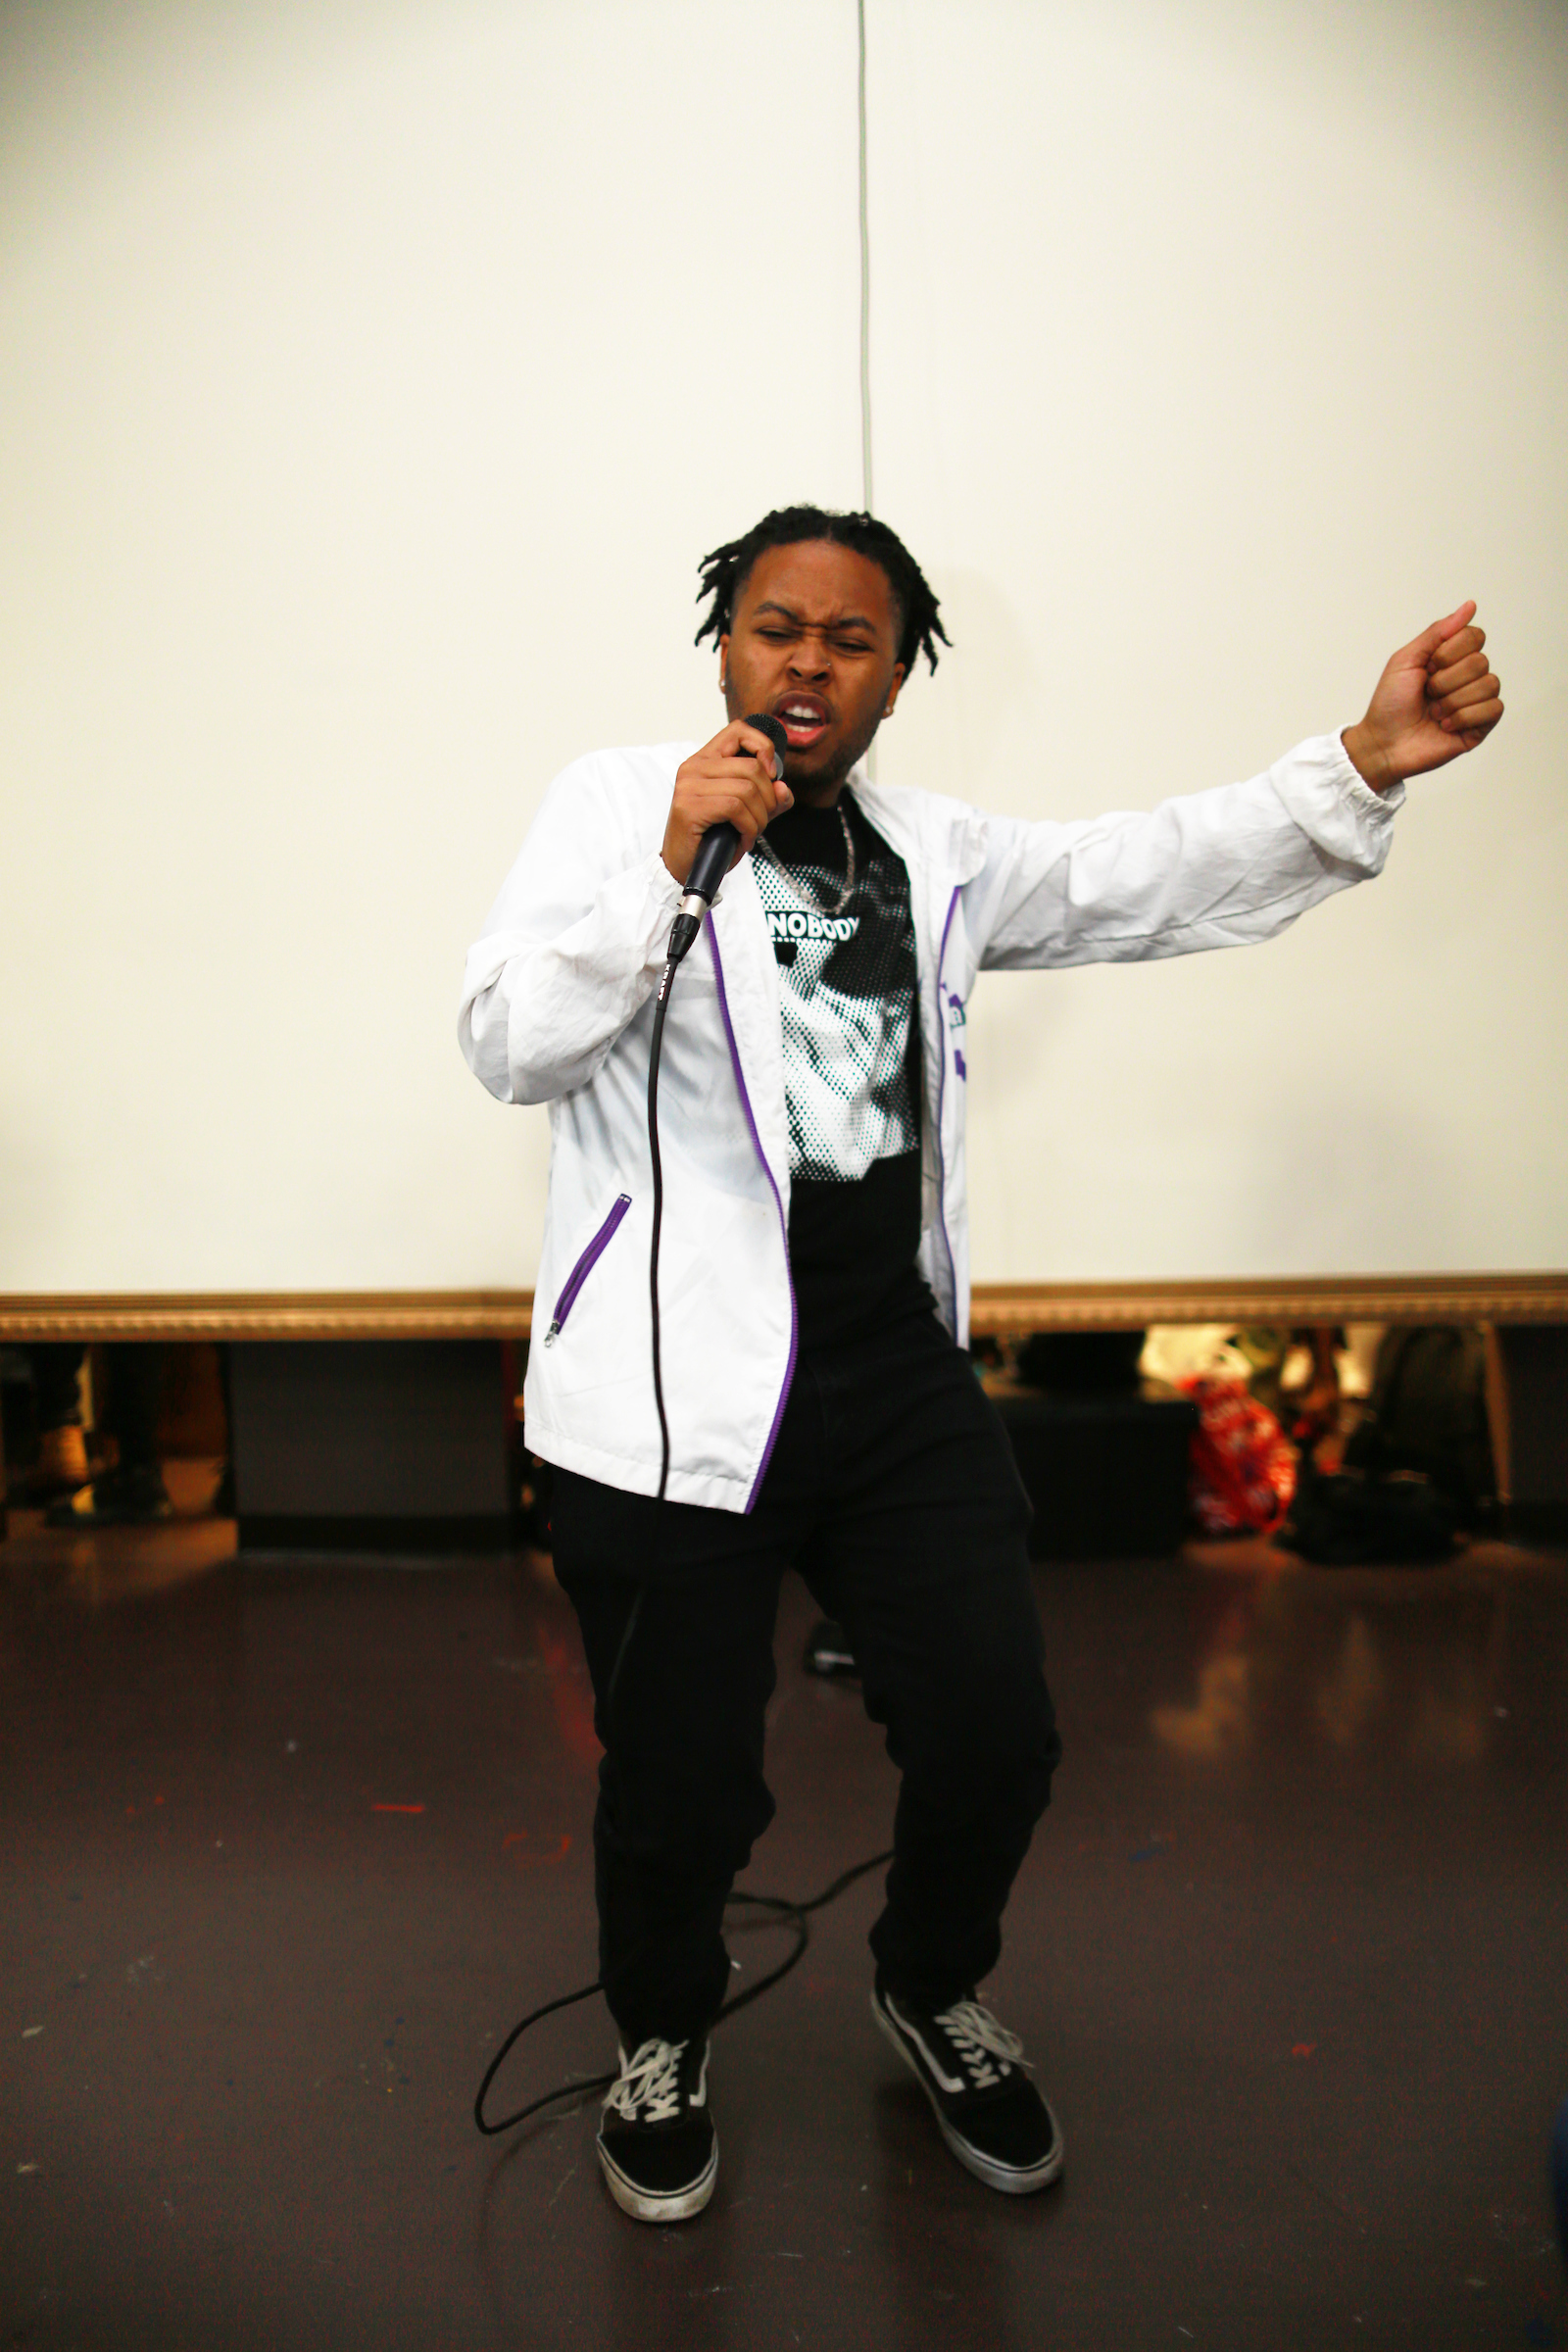 David Camper, a JSU student, who goes by the stage name Excalibur, gave attendees at the fashion show a taste of his rap performance. (Photo by William Kelly/JSU)